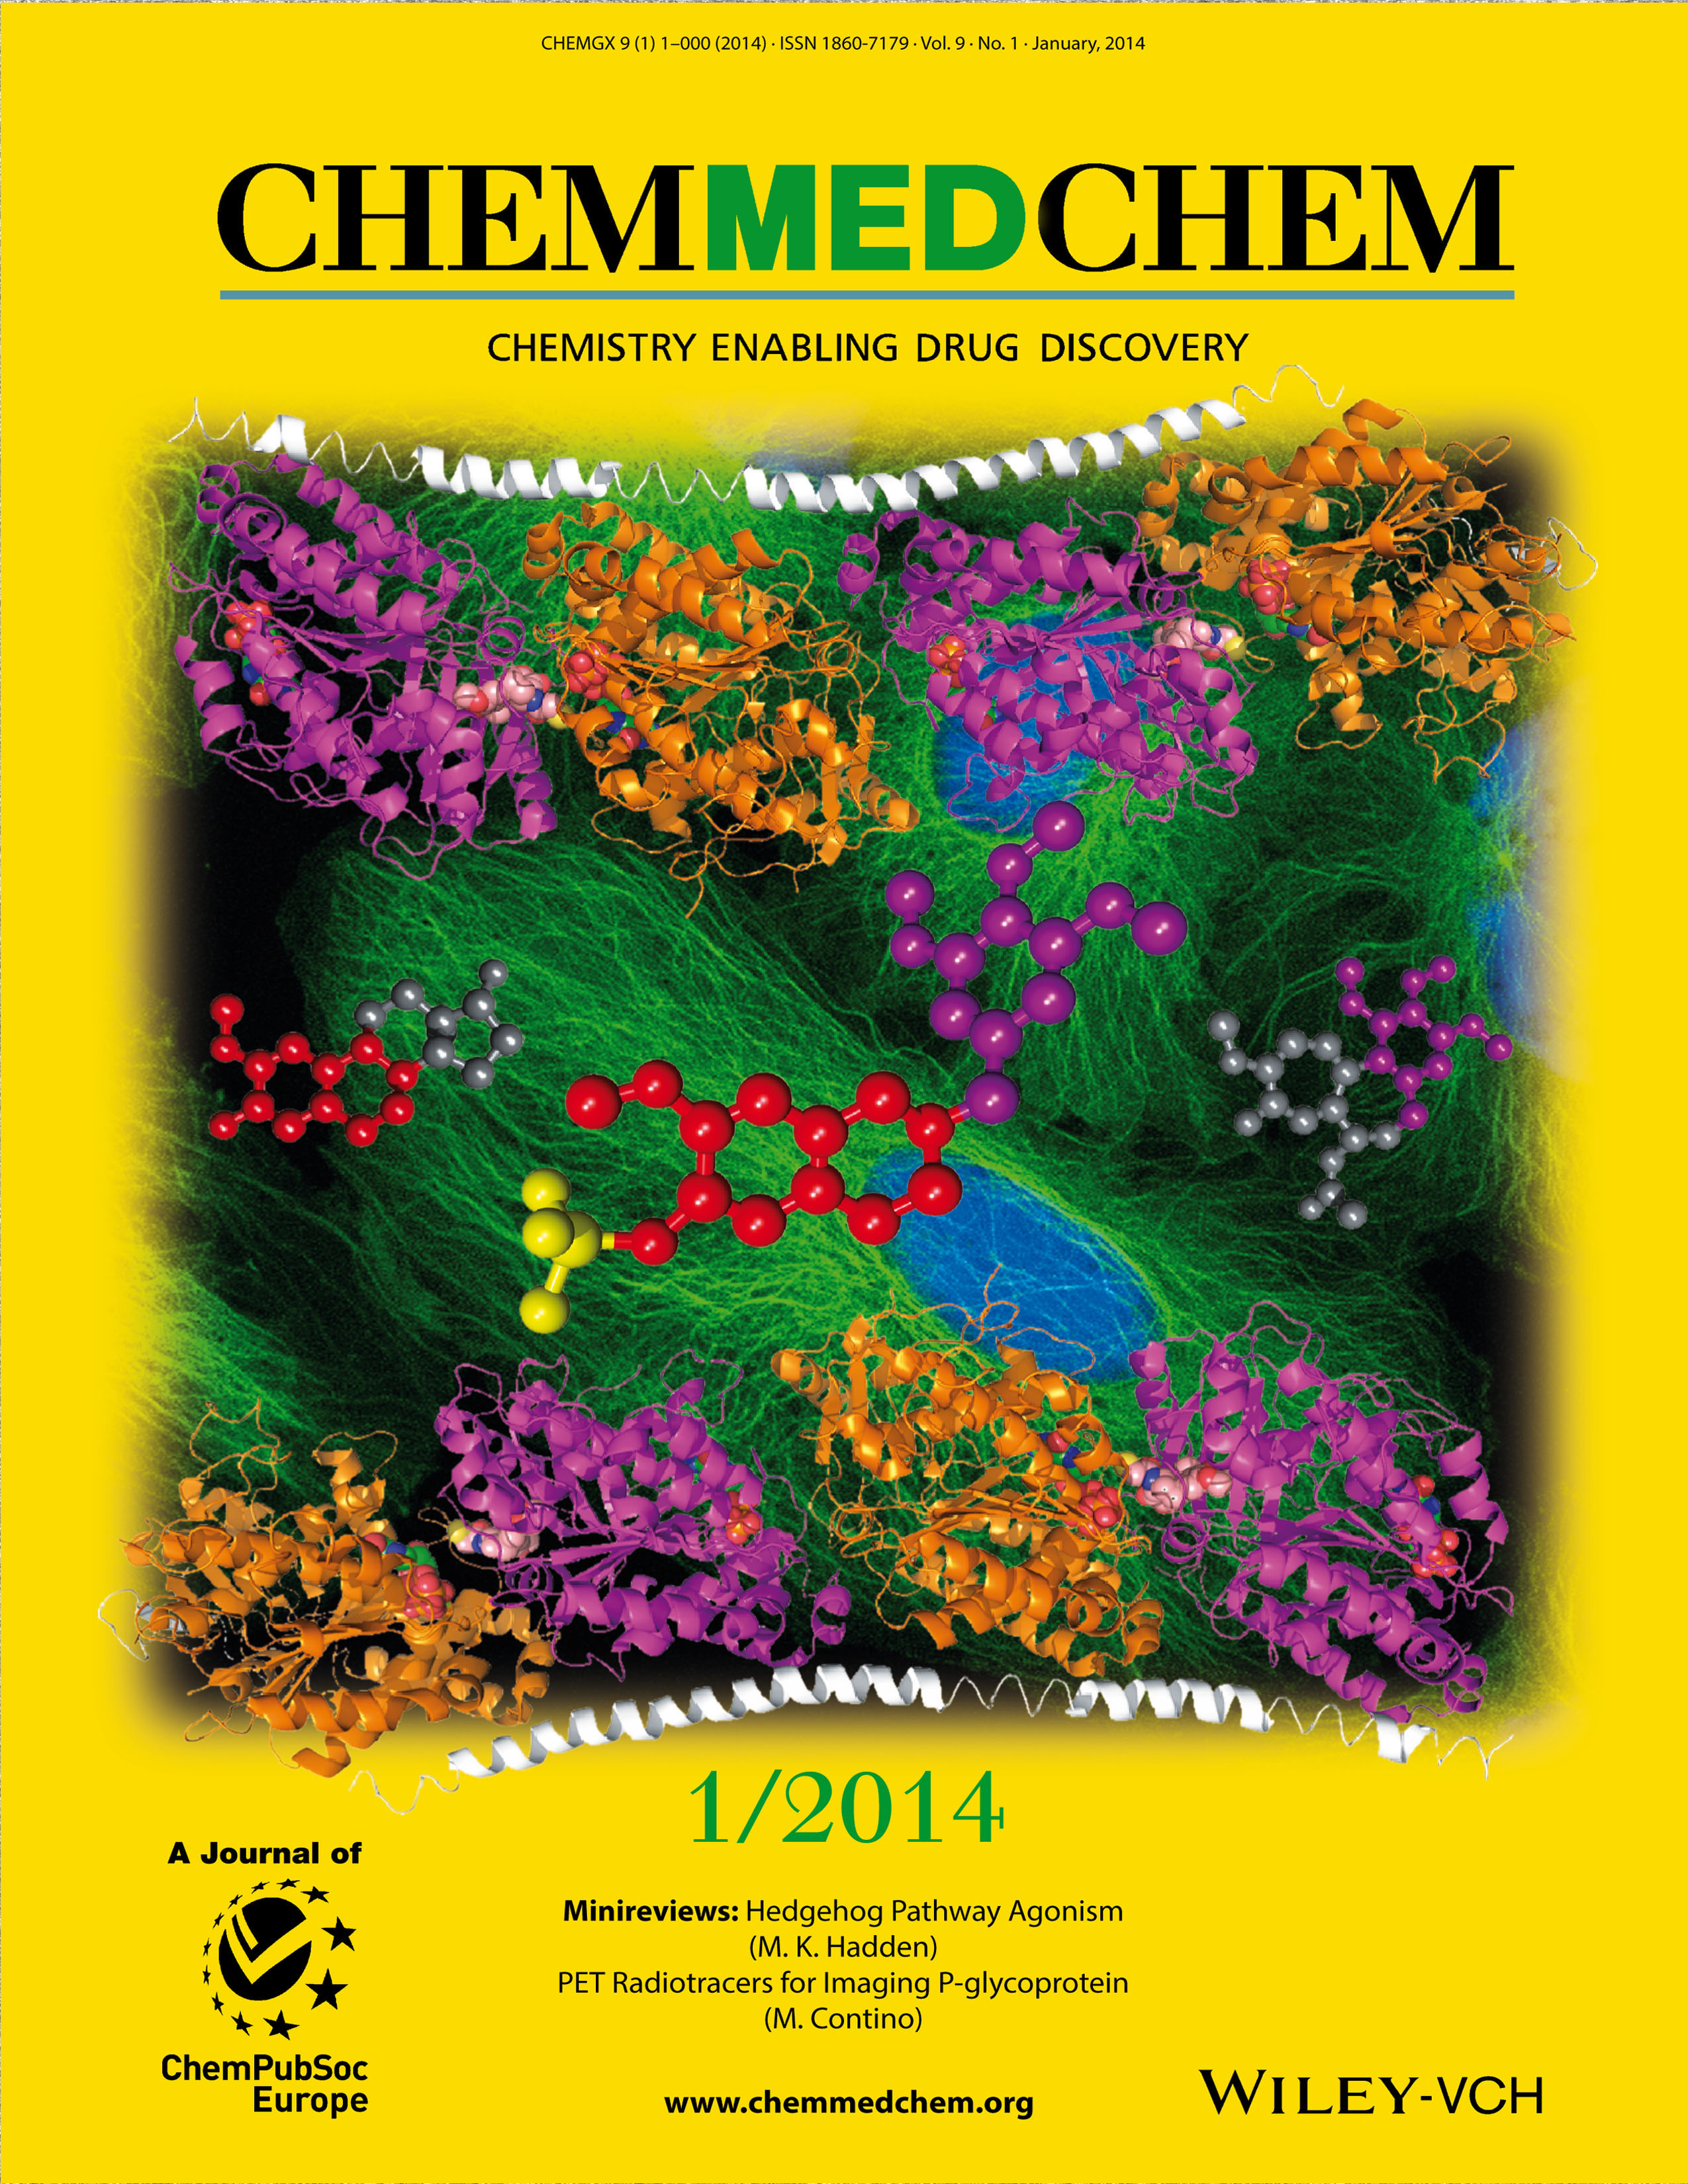 CHEMMEDCHEM January 2014